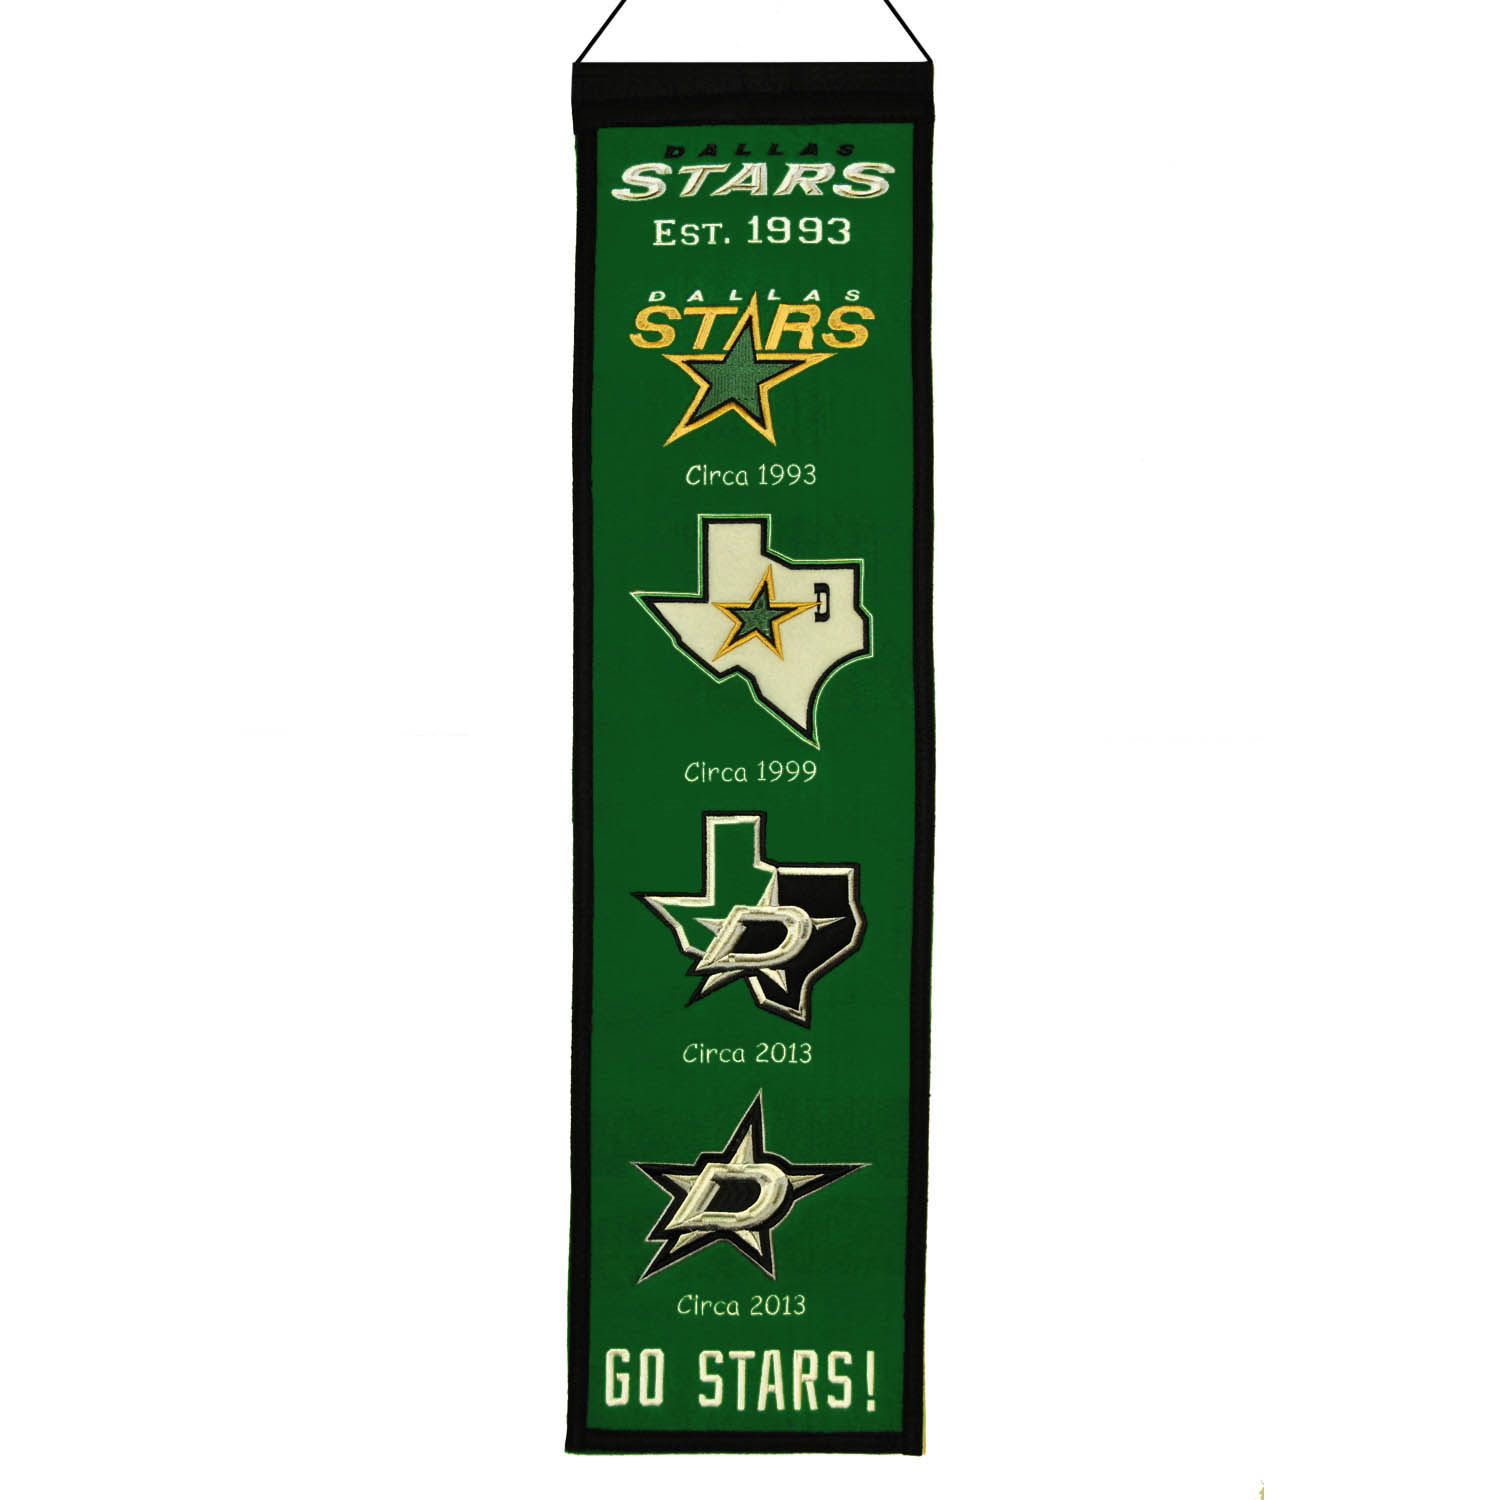 new dallas stars banner.png